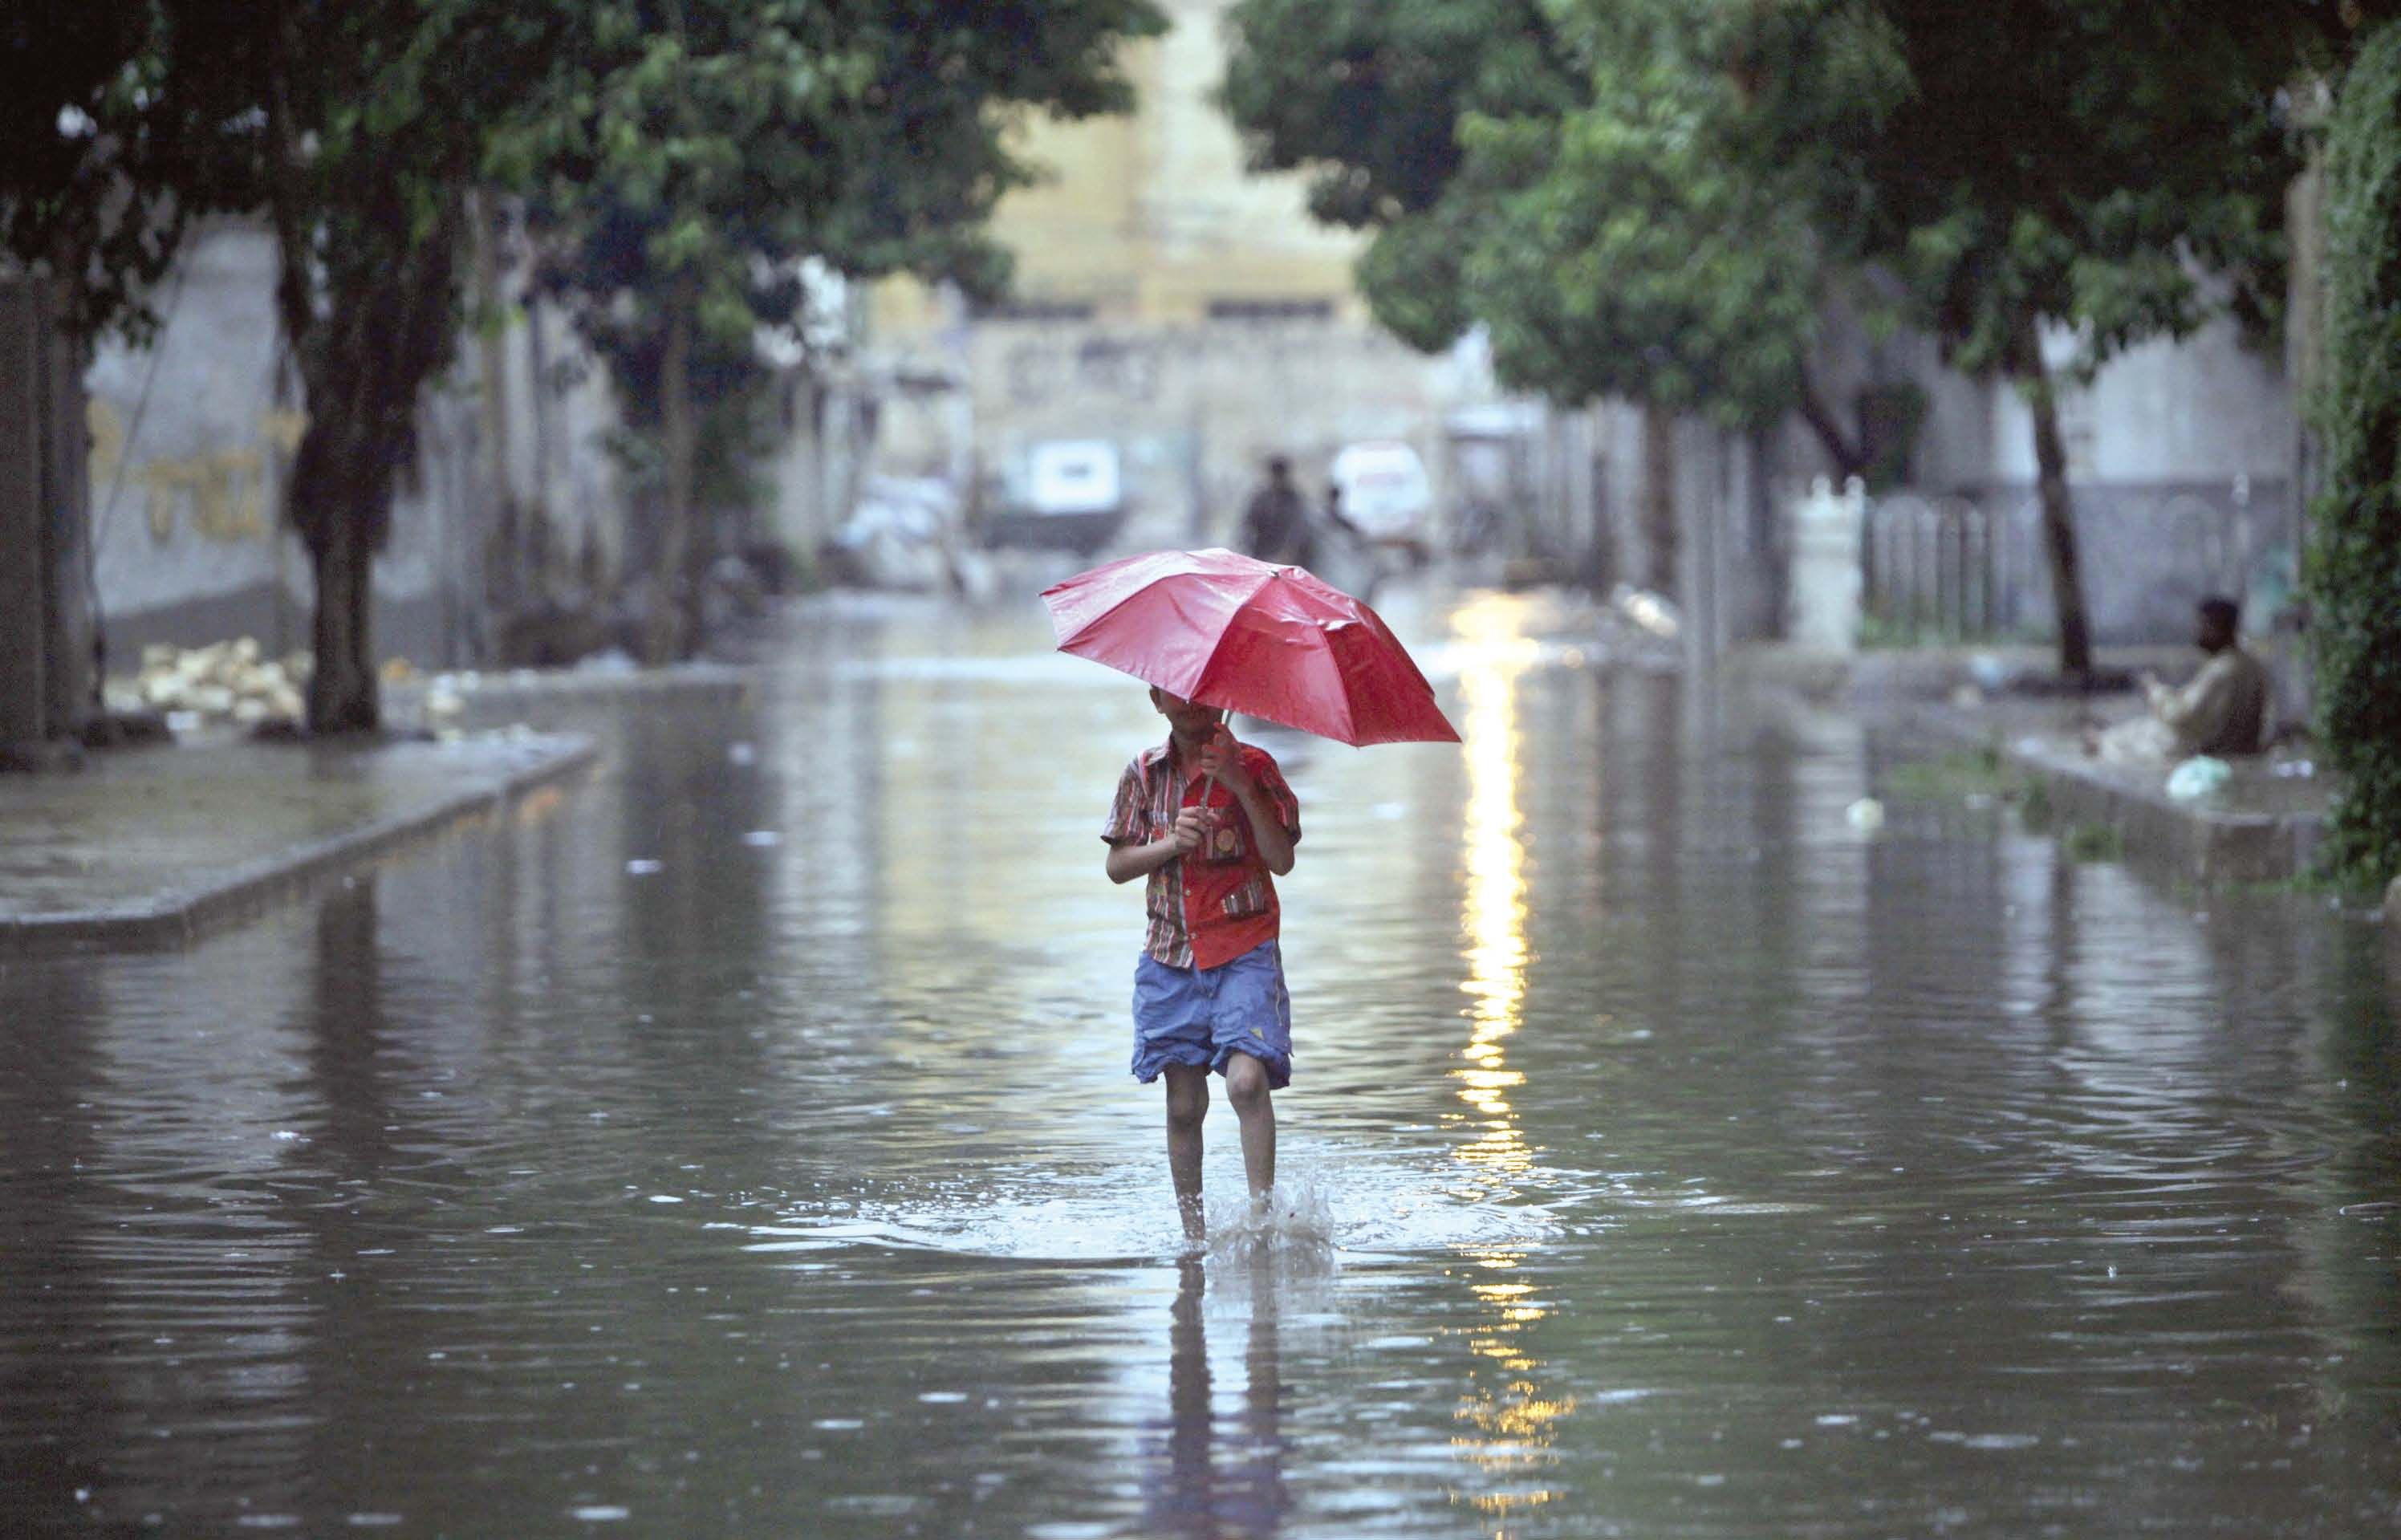 Pakistan may receive 10% extra rain this year